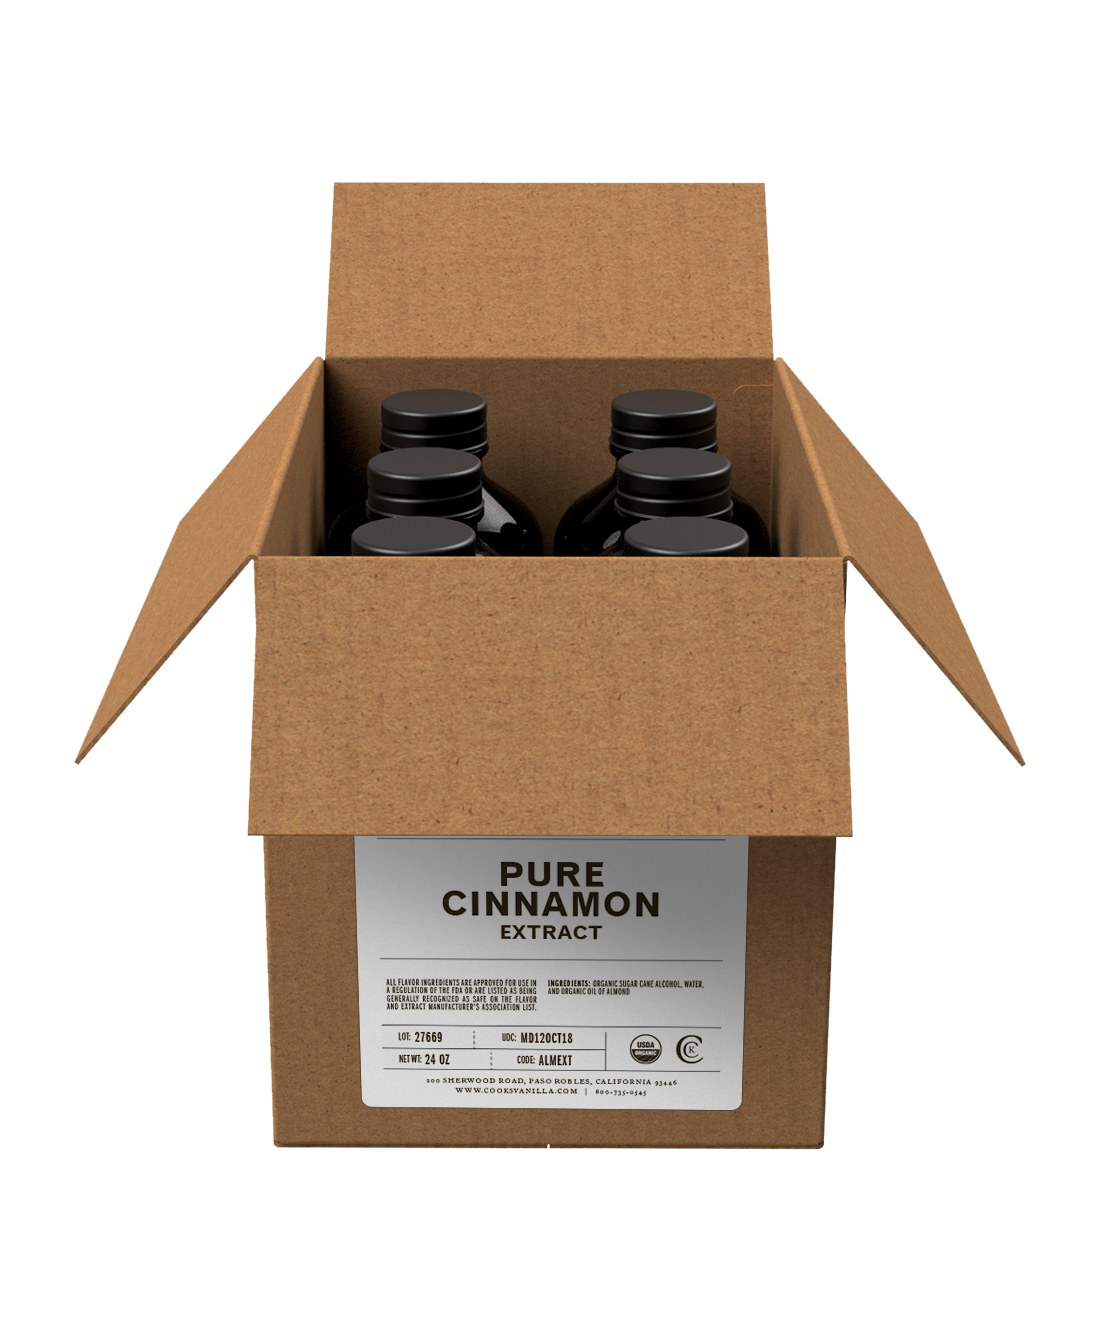 Flavoring | Cinnamon Extract (Pure) | Packs and Cases